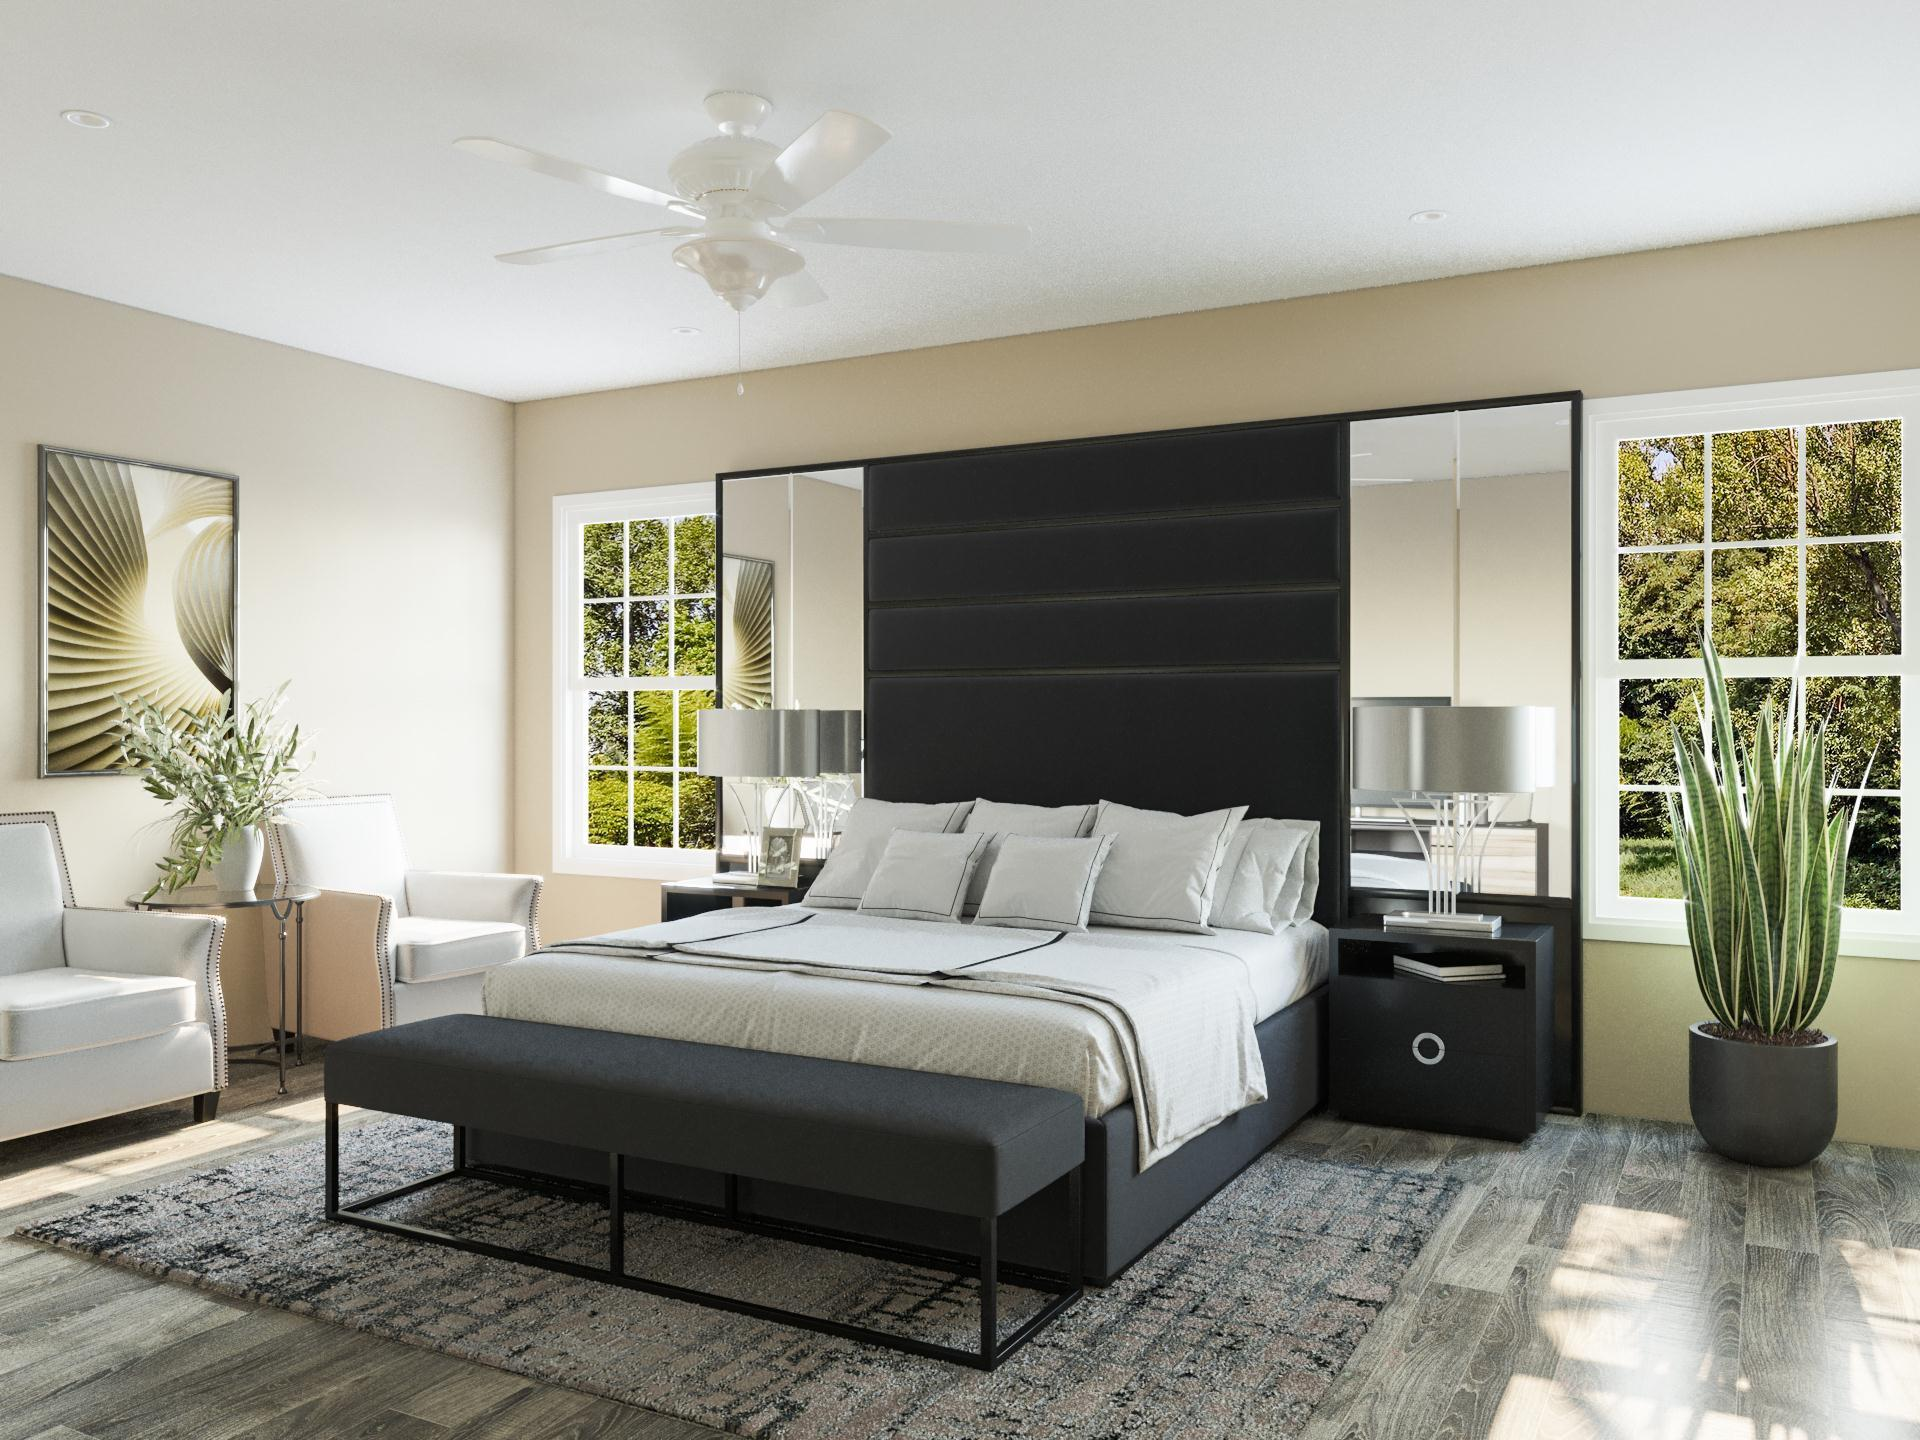 Bedroom featured in the Chamblee (Active Adult) By Artisan Built Communities in Atlanta, GA